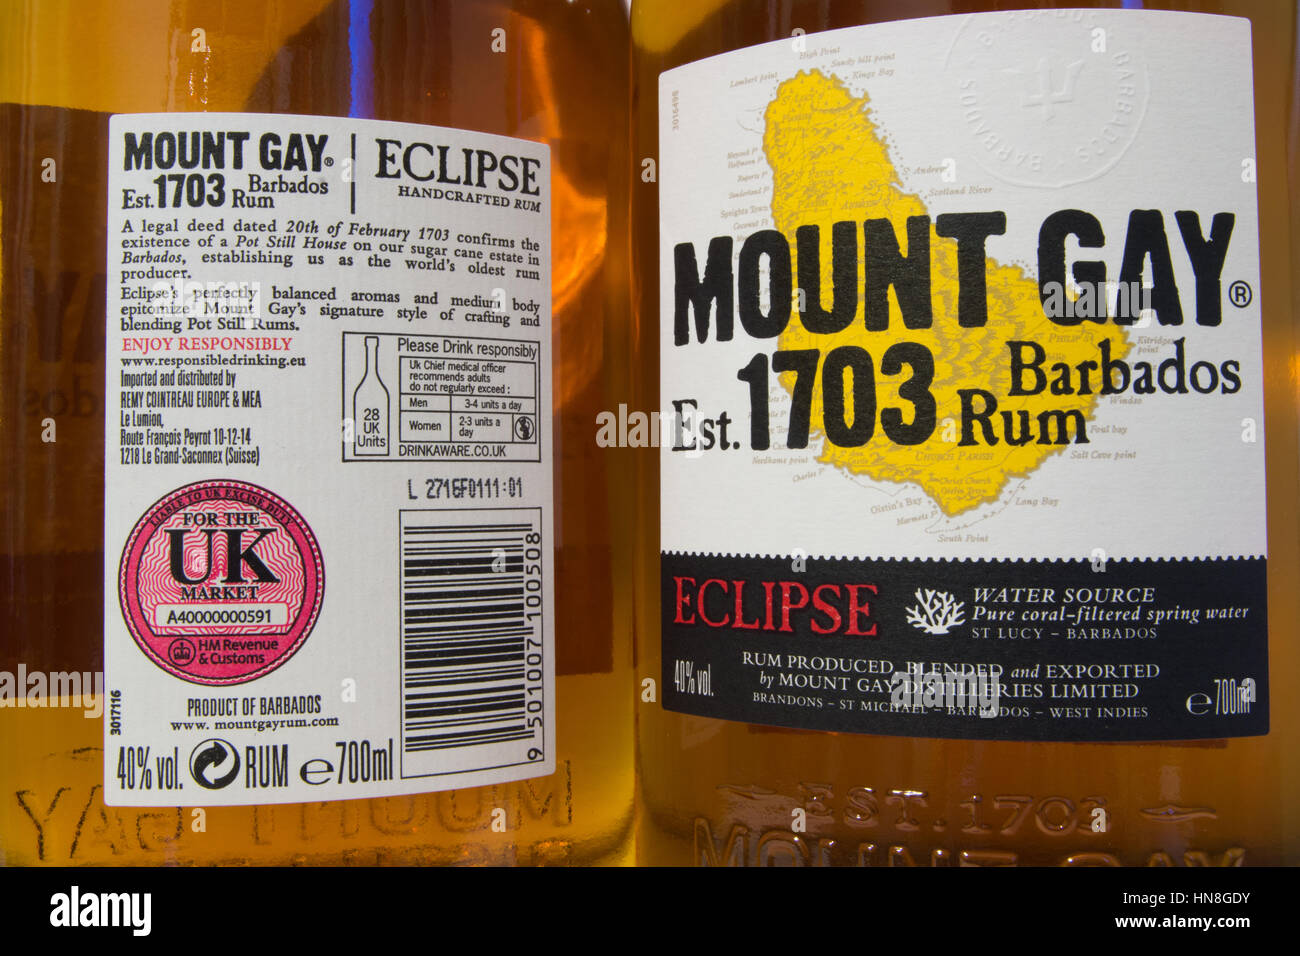 MOUNT GAY RUM: A bottle of Eclipse rum . imported for the UK market, containing 28 UK Units of alcohol. - Stock Image